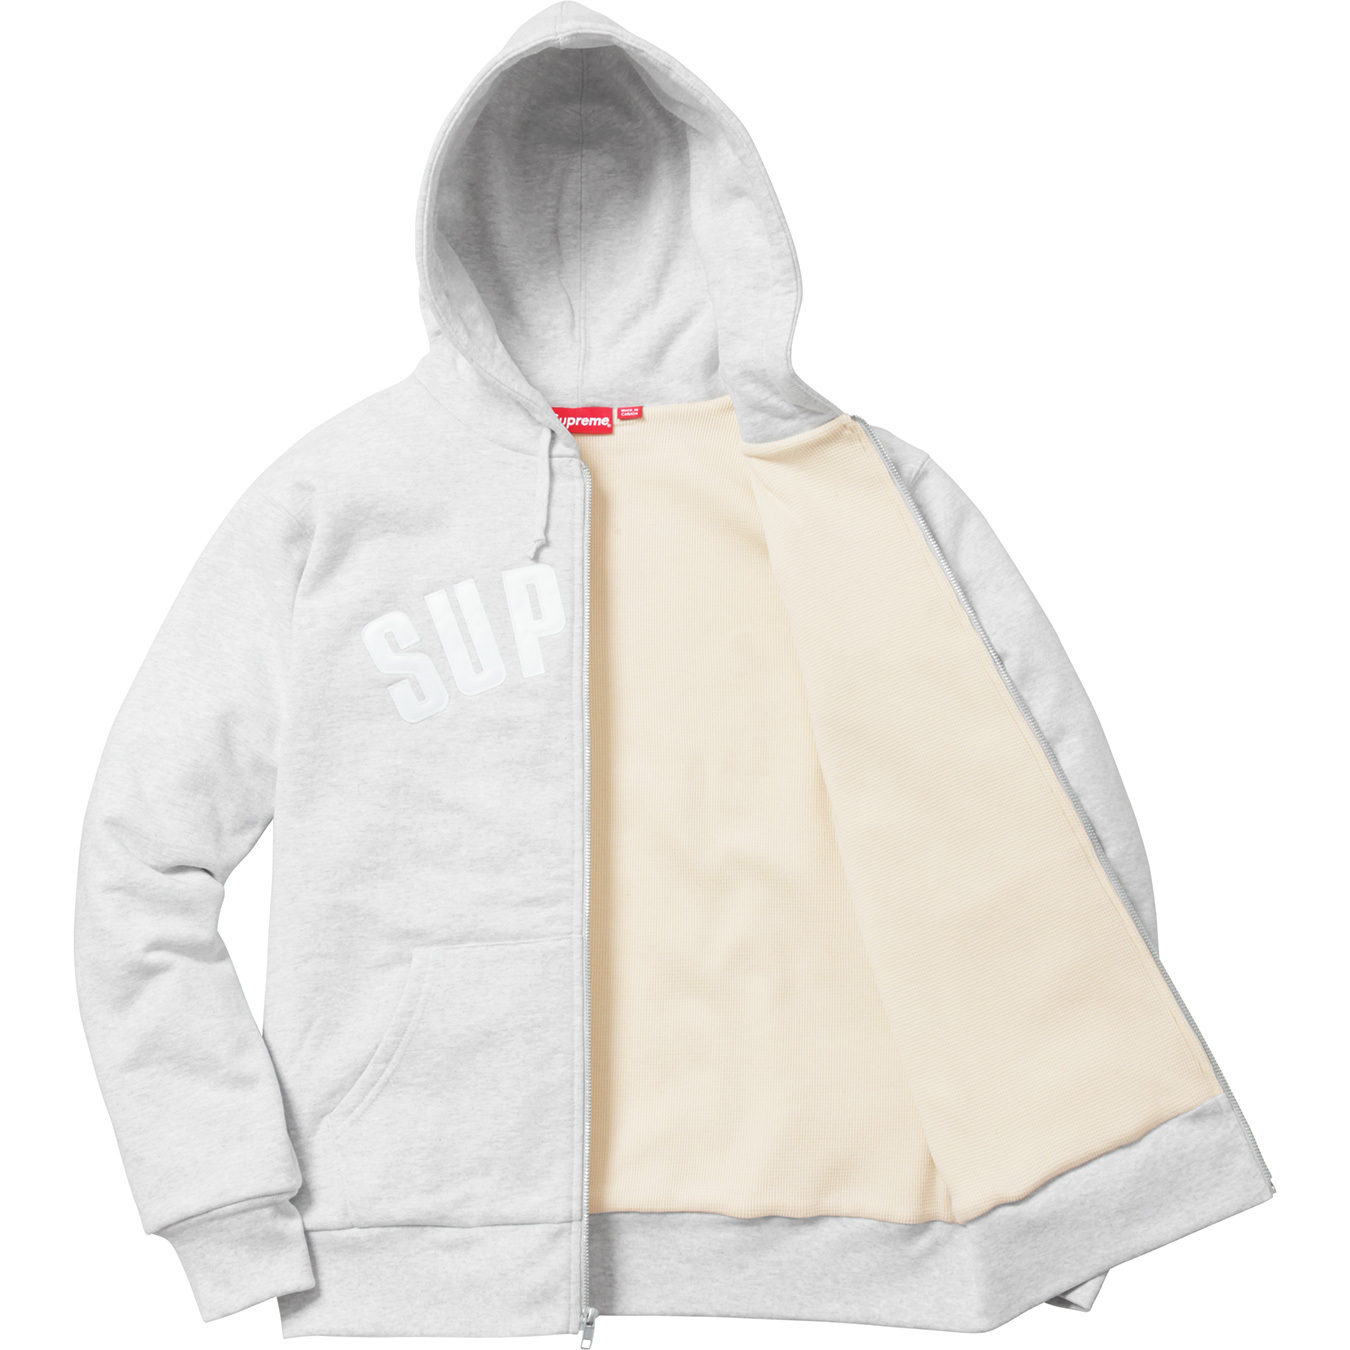 supreme-2017aw-fall-winter-arc-logo-thermal-zip-up-sweatshirt